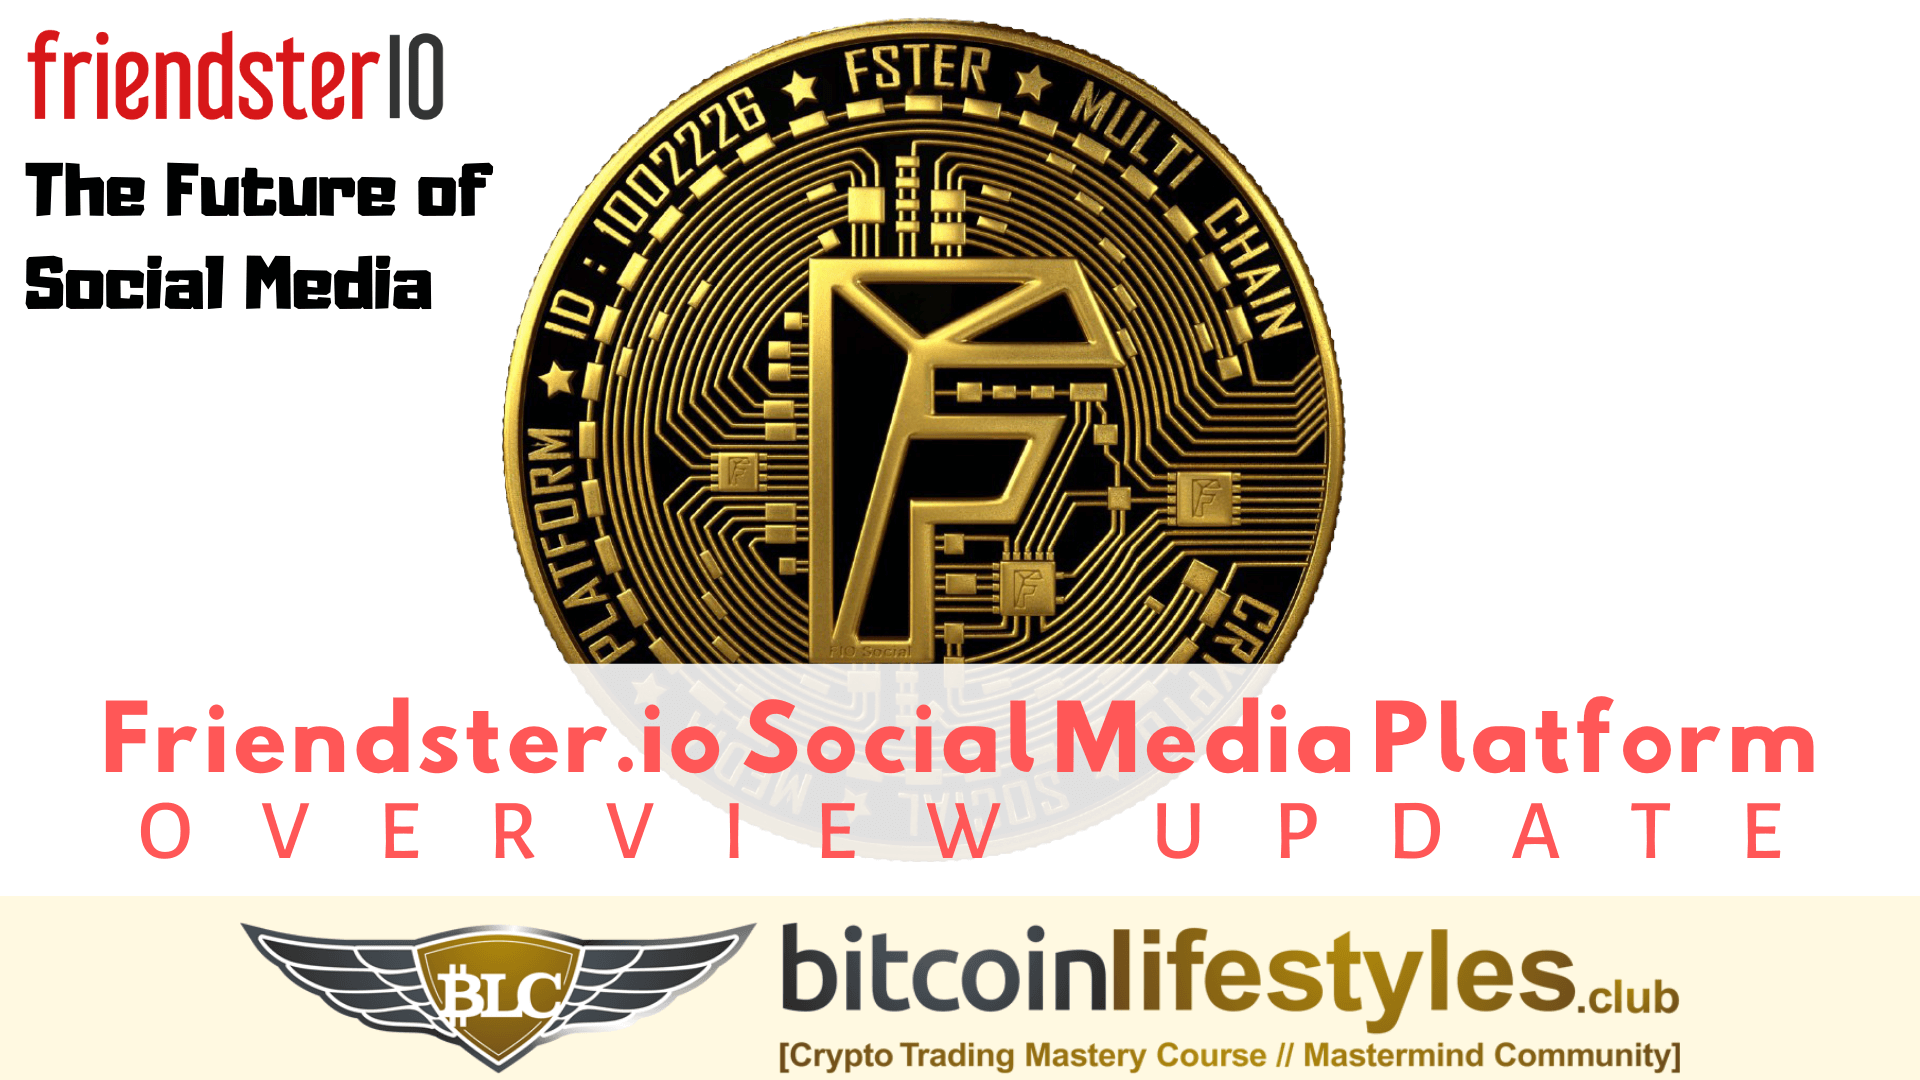 Friendster.io: The Future Of Social Media [Platform Overview]